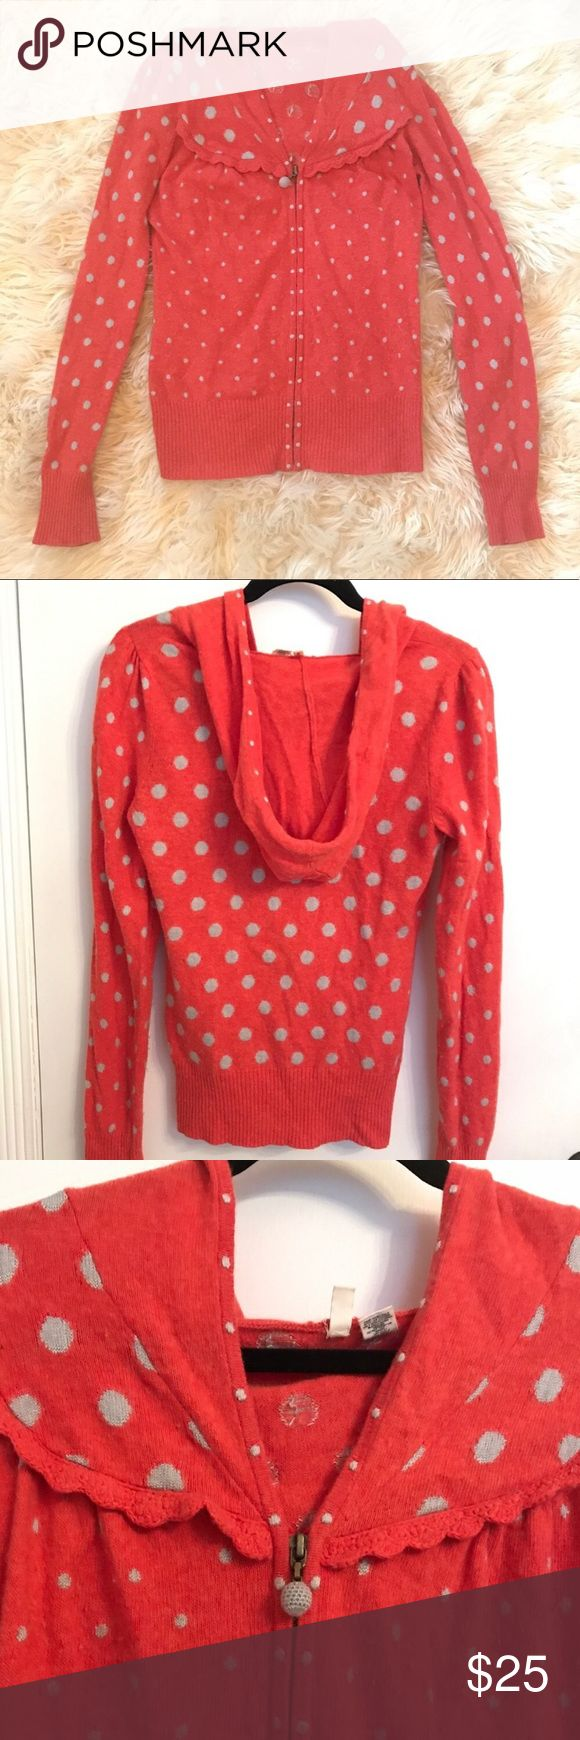 Anthropologie Polka Dot Sweater Super cute light weight hooded zip up MOTH sweater from Anthropologie. It's a cheerful orange color with grey polka dots. Size Medium. Crotchet details add charm to this fun top. Perfect for fall! 🍁🍂🌼🌾 Anthropologie Sweaters